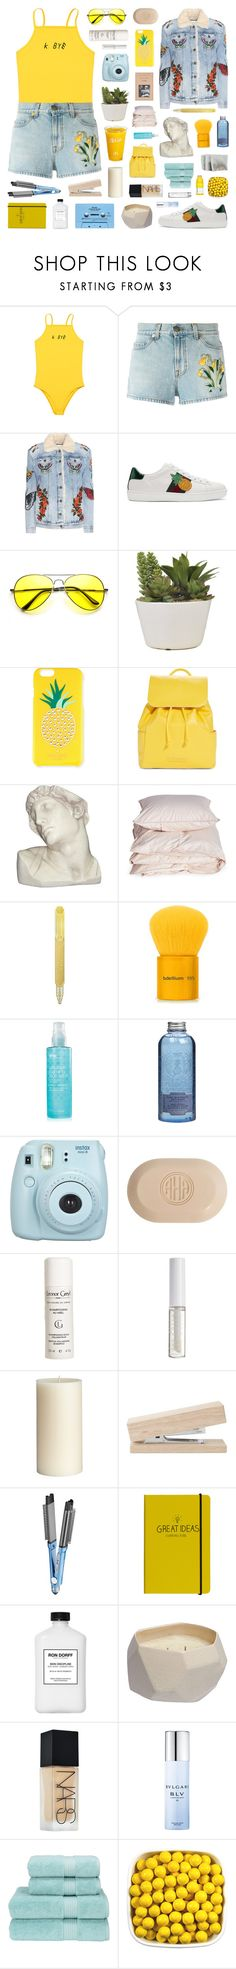 """the salty waves crash against my skin"" by julyuhnah ❤ liked on Polyvore featuring Gucci, Kate Spade, Vera Bradley, House Parts, Aiayu, Tom Dixon, Bdellium Tools, Bliss, Le Couvent des Minimes and Fujifilm"